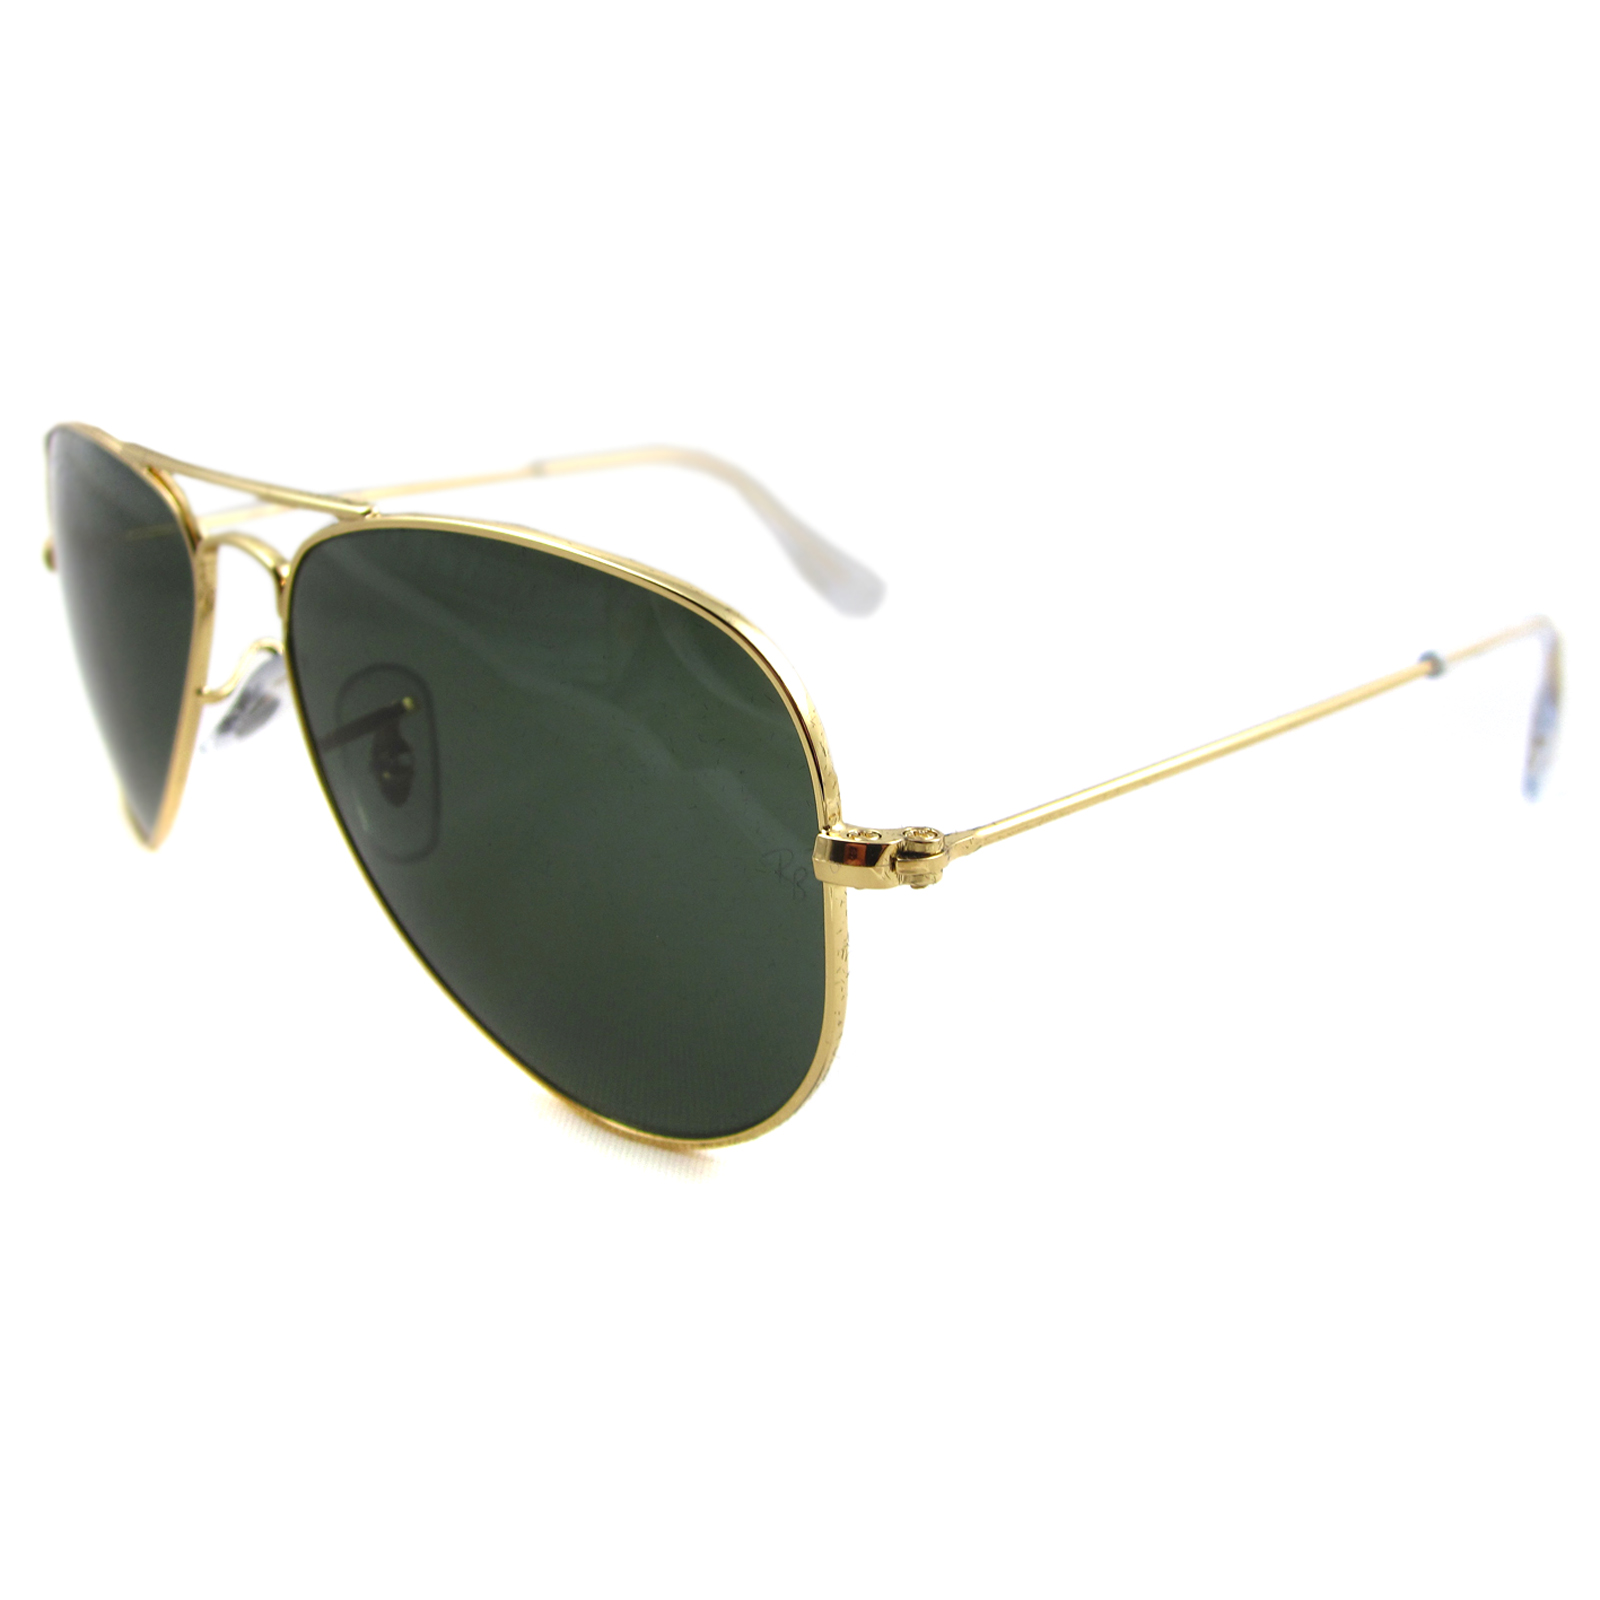 cheap ray ban small aviator 3044 sunglasses discounted sunglasses. Black Bedroom Furniture Sets. Home Design Ideas